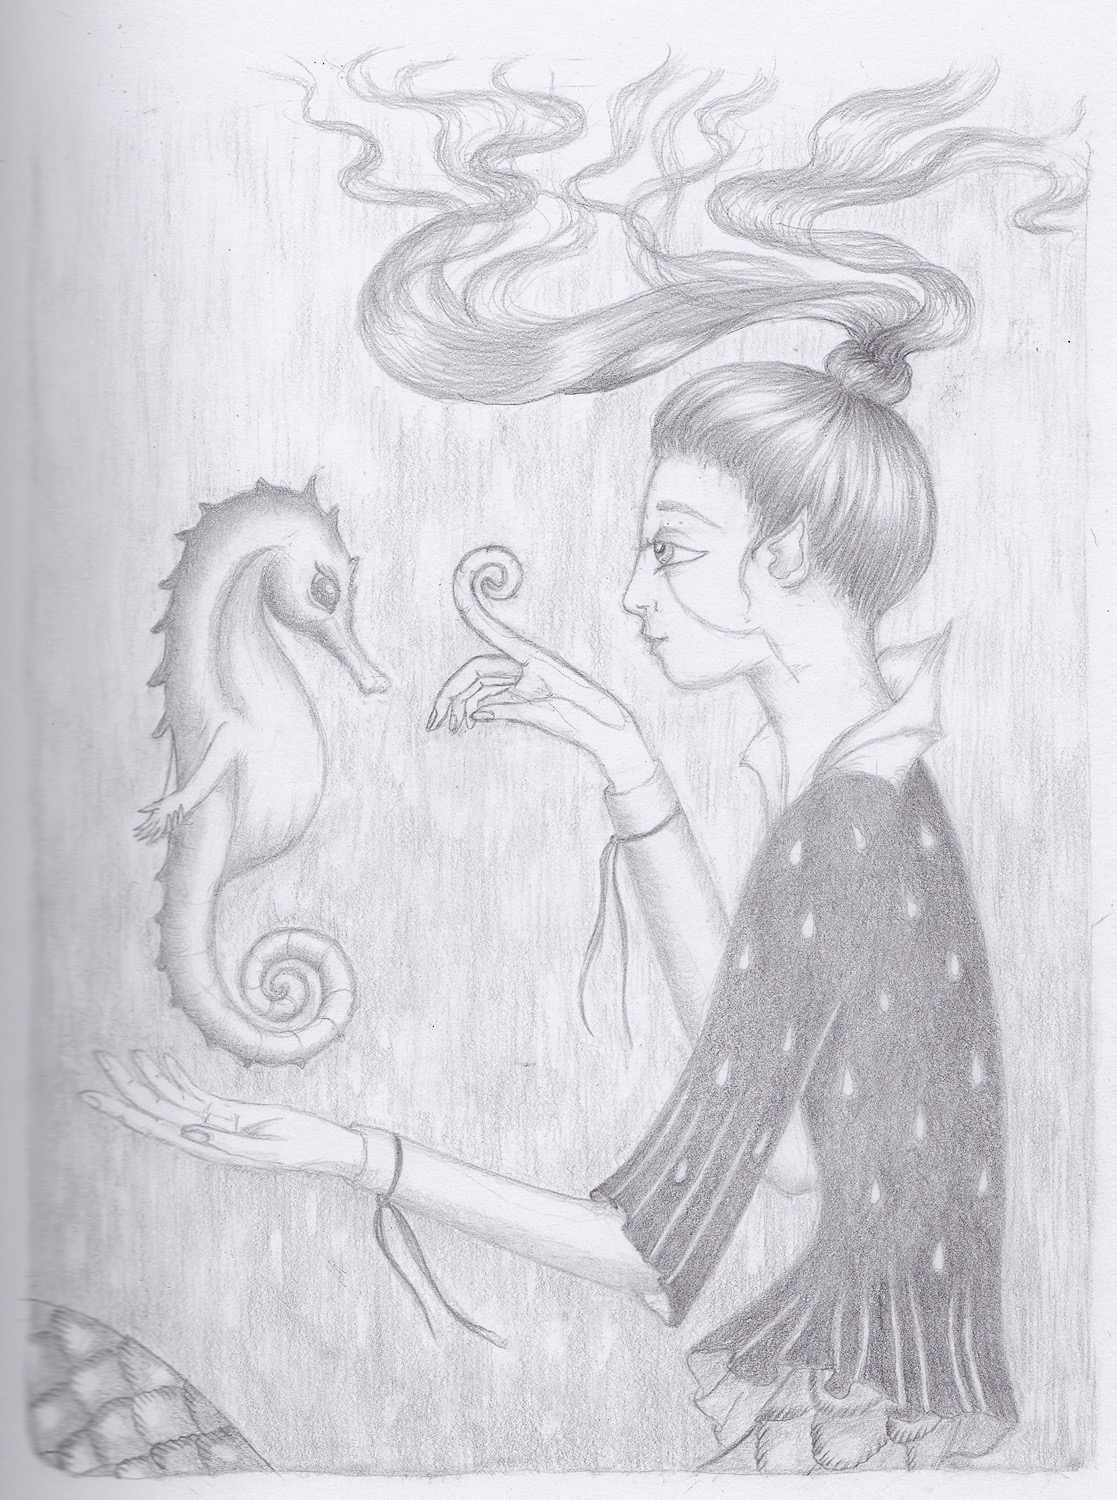 Pencil drawing by Simona Ruggeri. Used with permission.